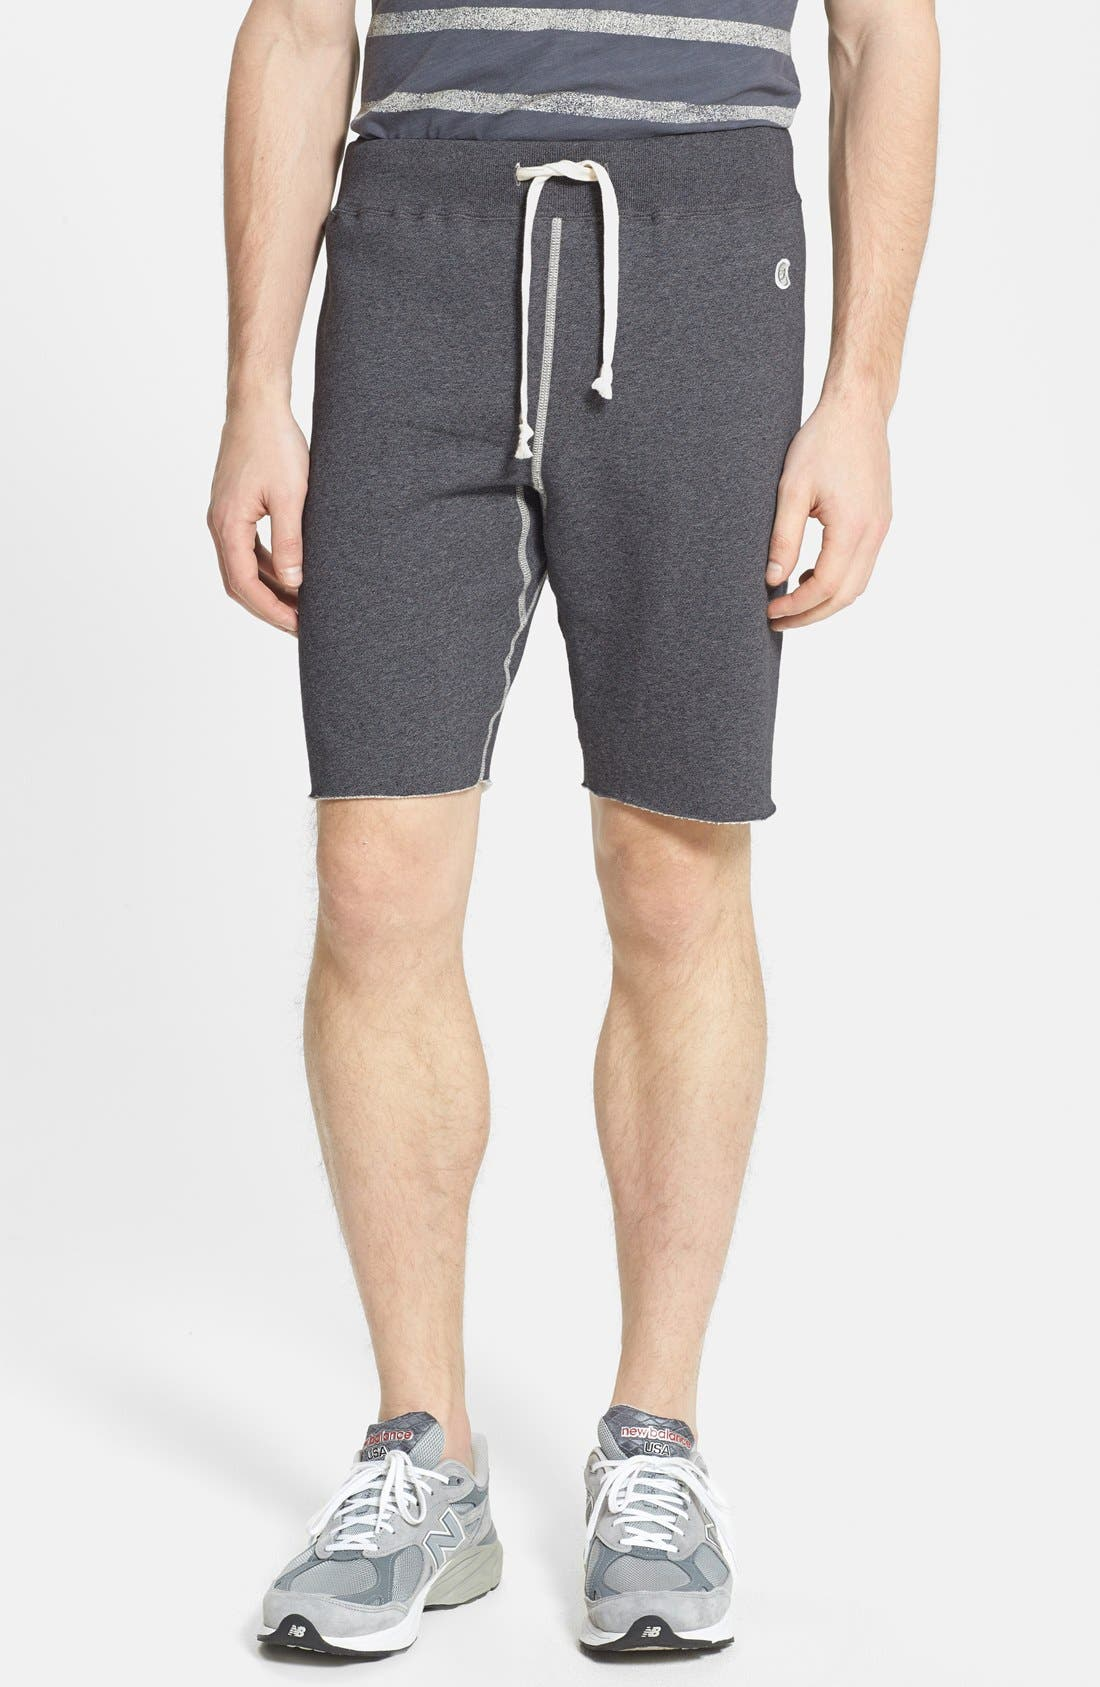 Main Image - Todd Snyder + Champion Knit Cotton Shorts